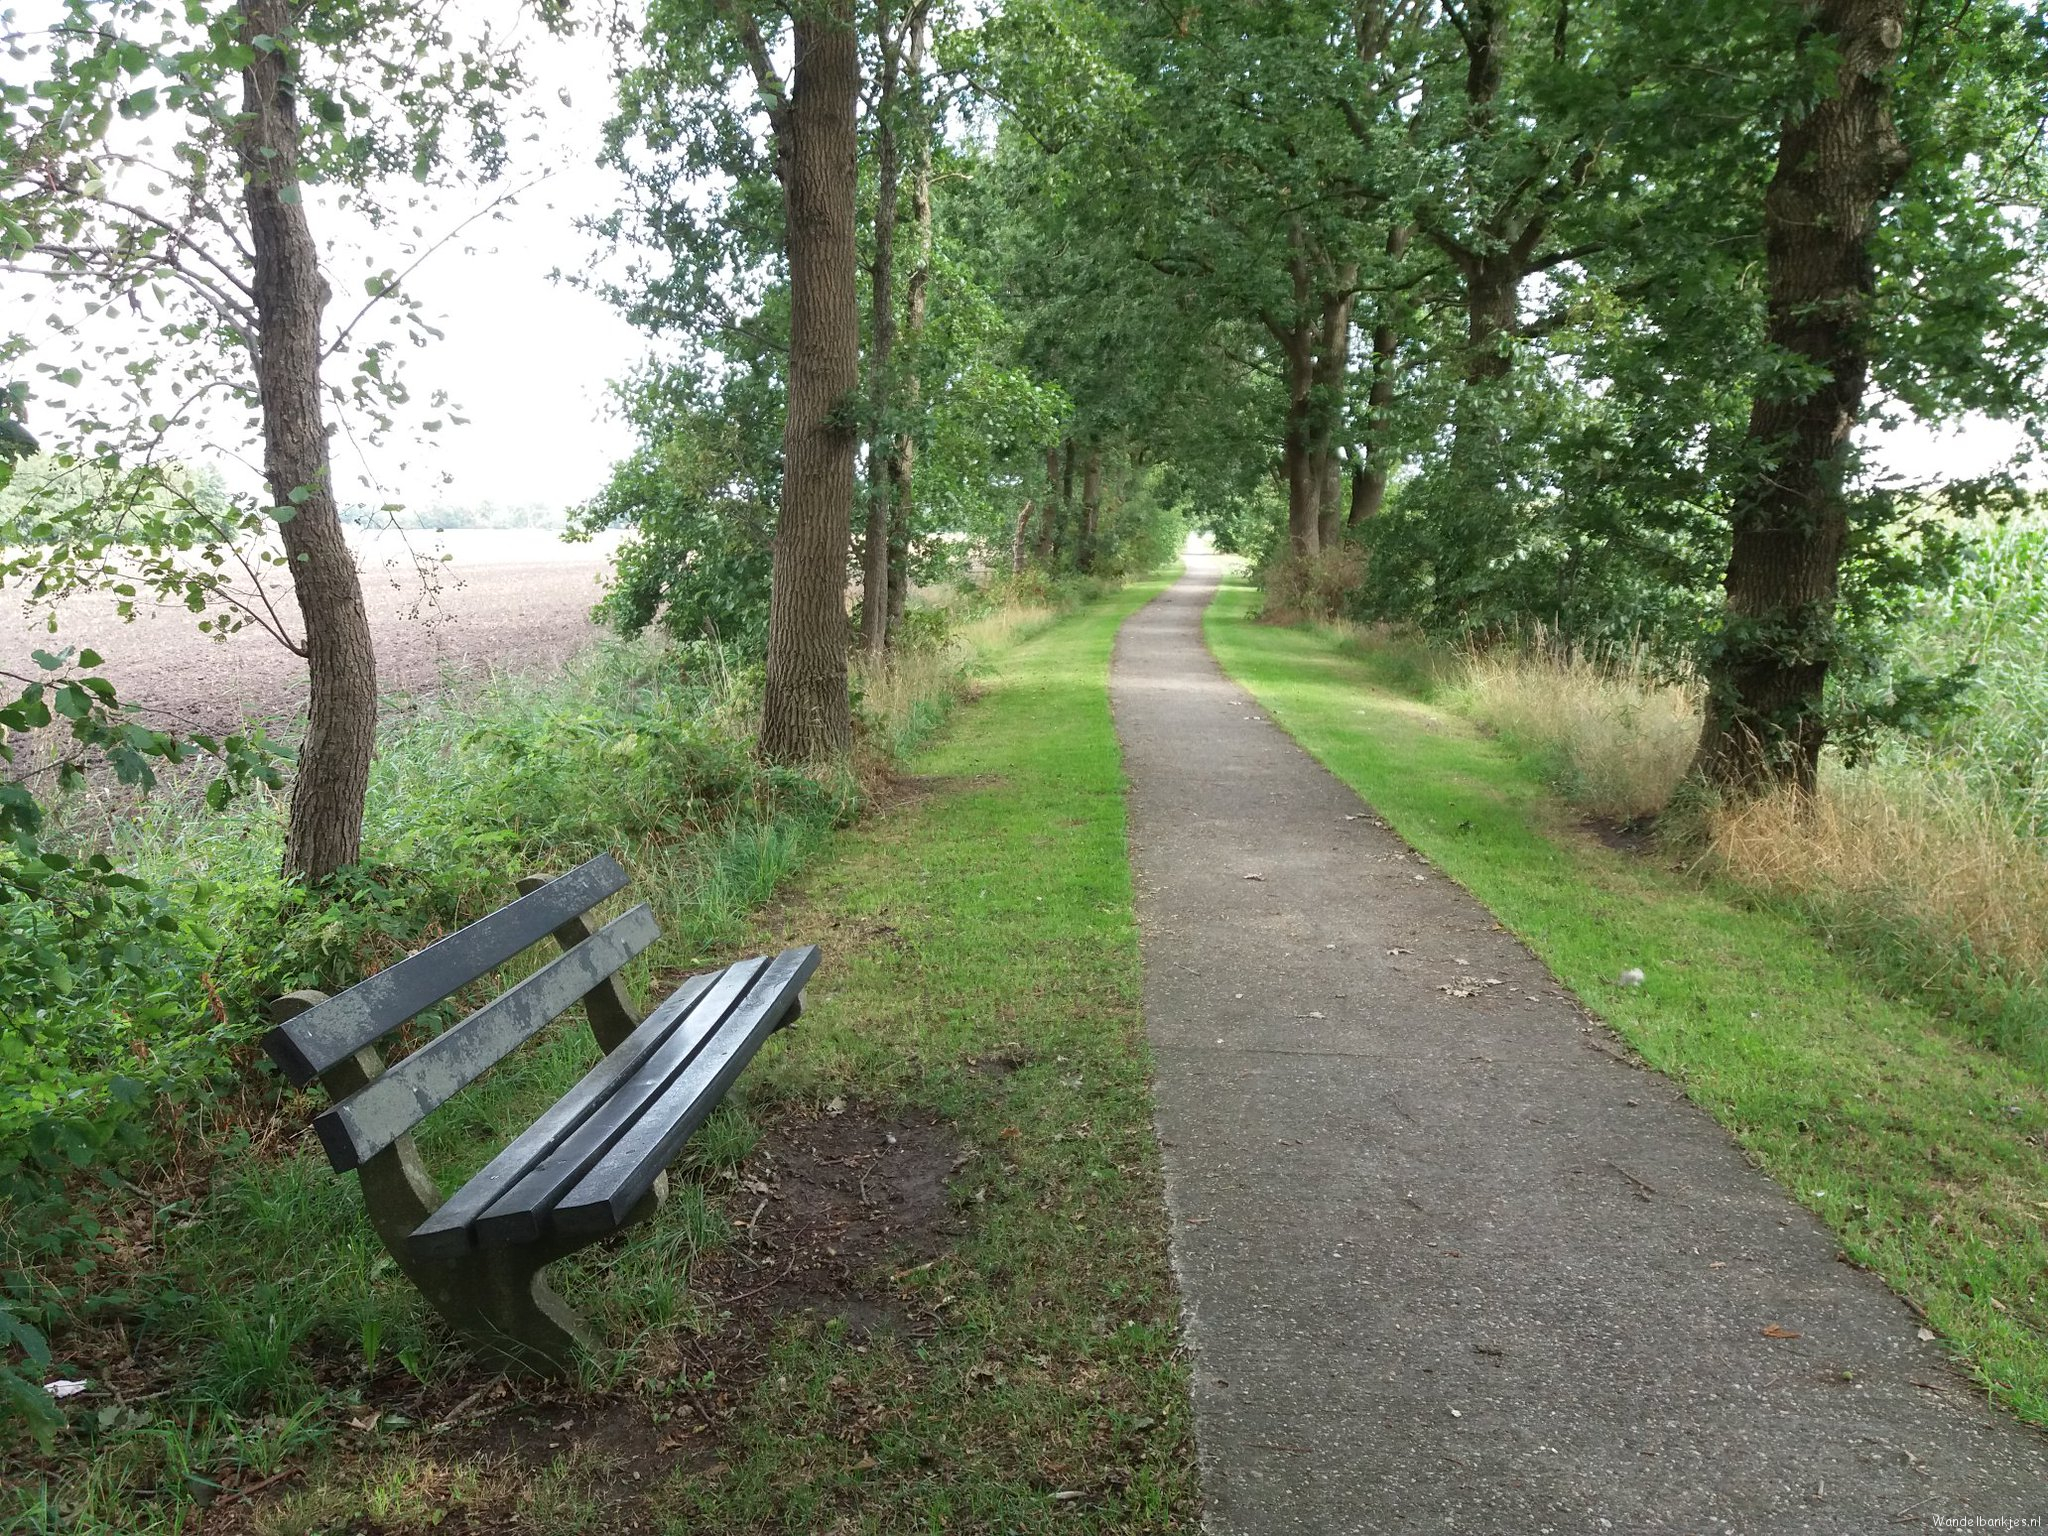 rt-walkingmetwar-walking benches-along-the-long-cycle-path-what-at-right-on-the-road-to-scharmer-https-t-co-24m5lzts8x